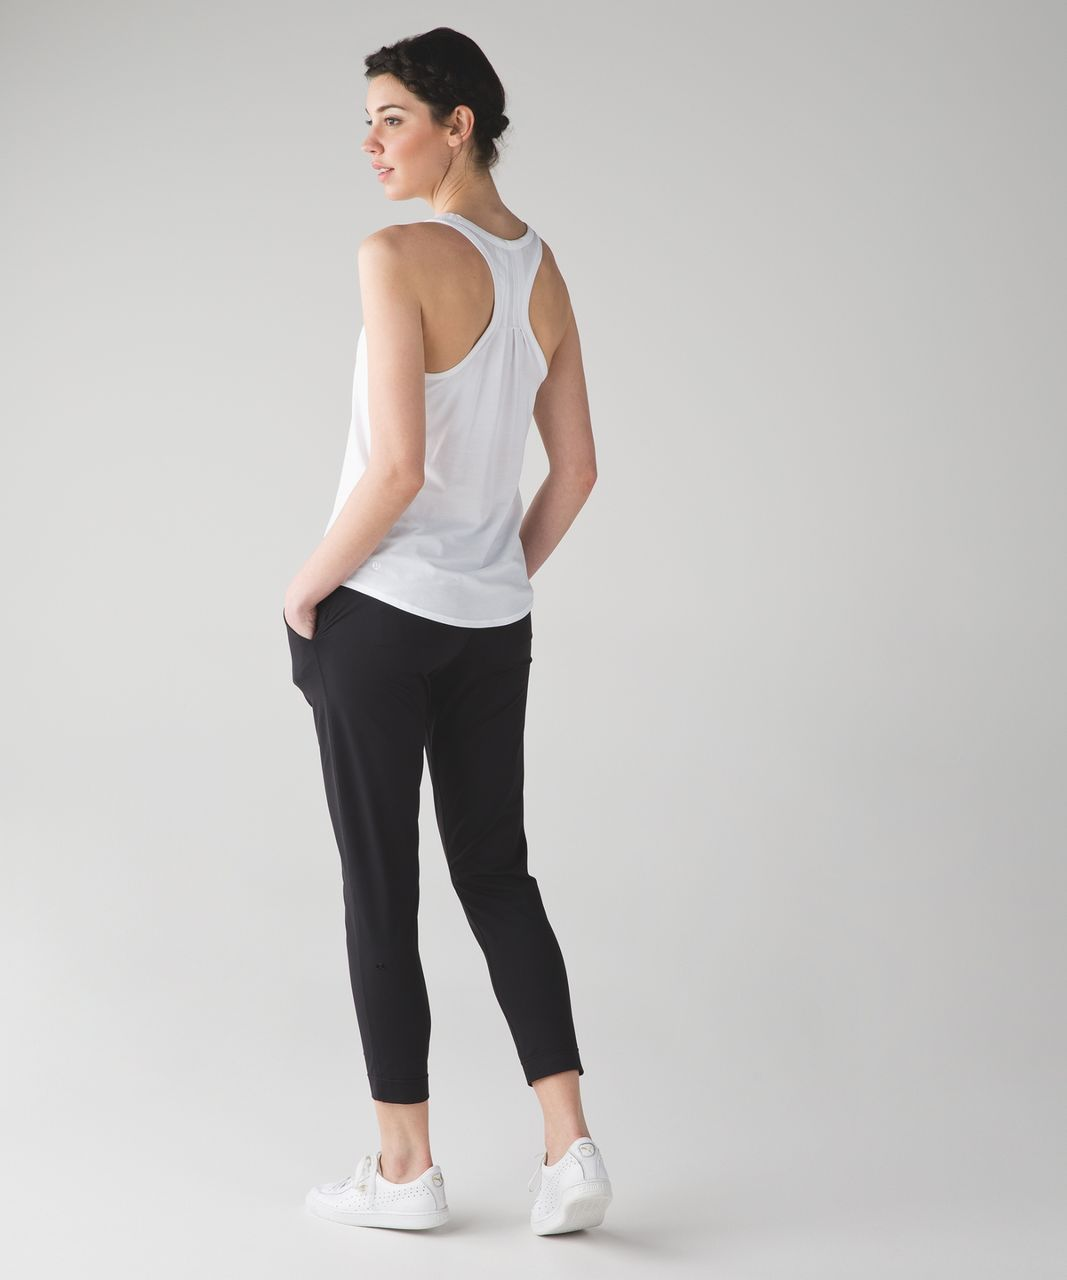 Lululemon Yogi Everyday Tank - White